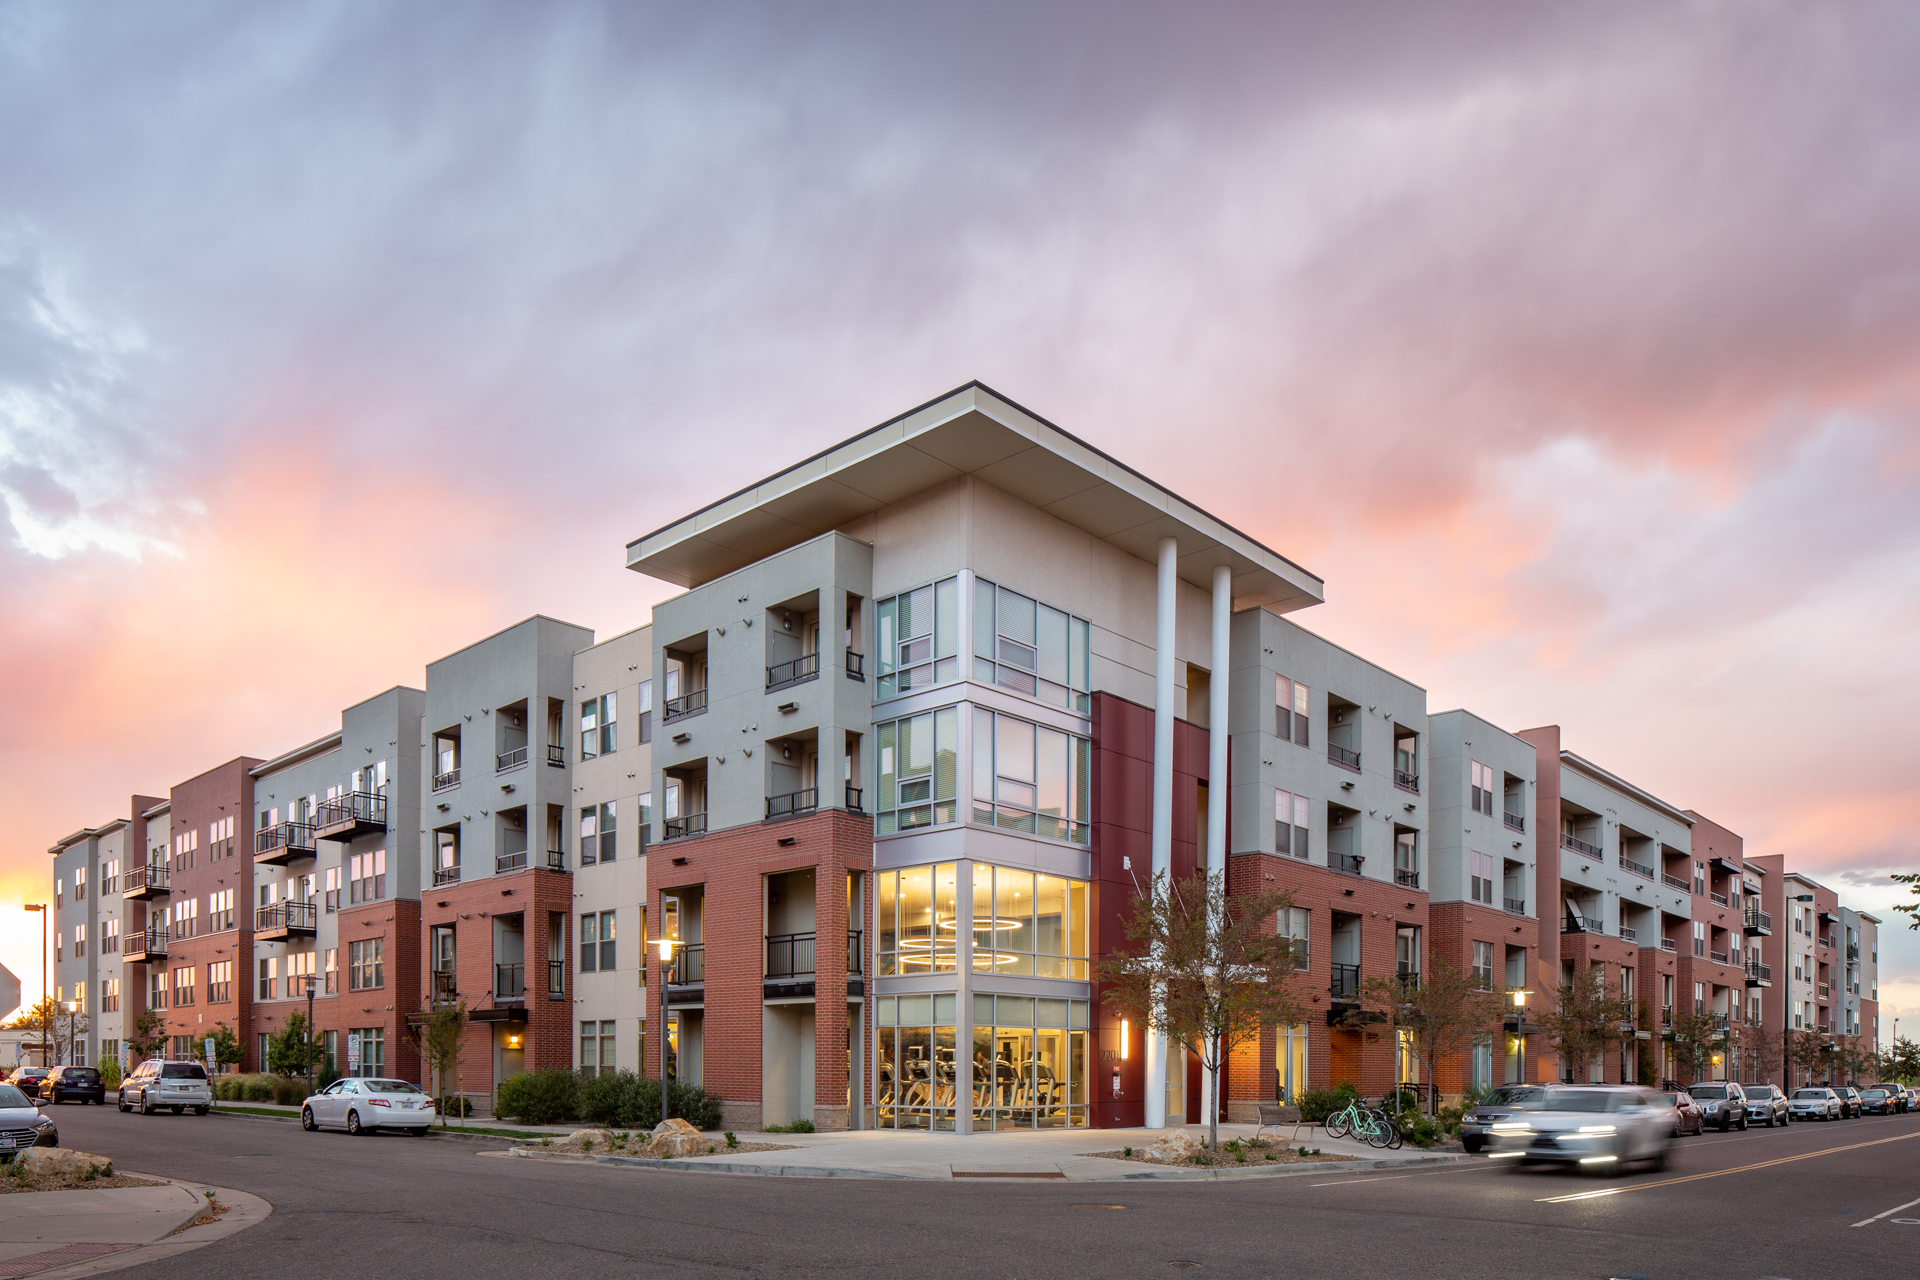 21 Fitzsimons Apartments - Aurora, CO - Apartments for Rent